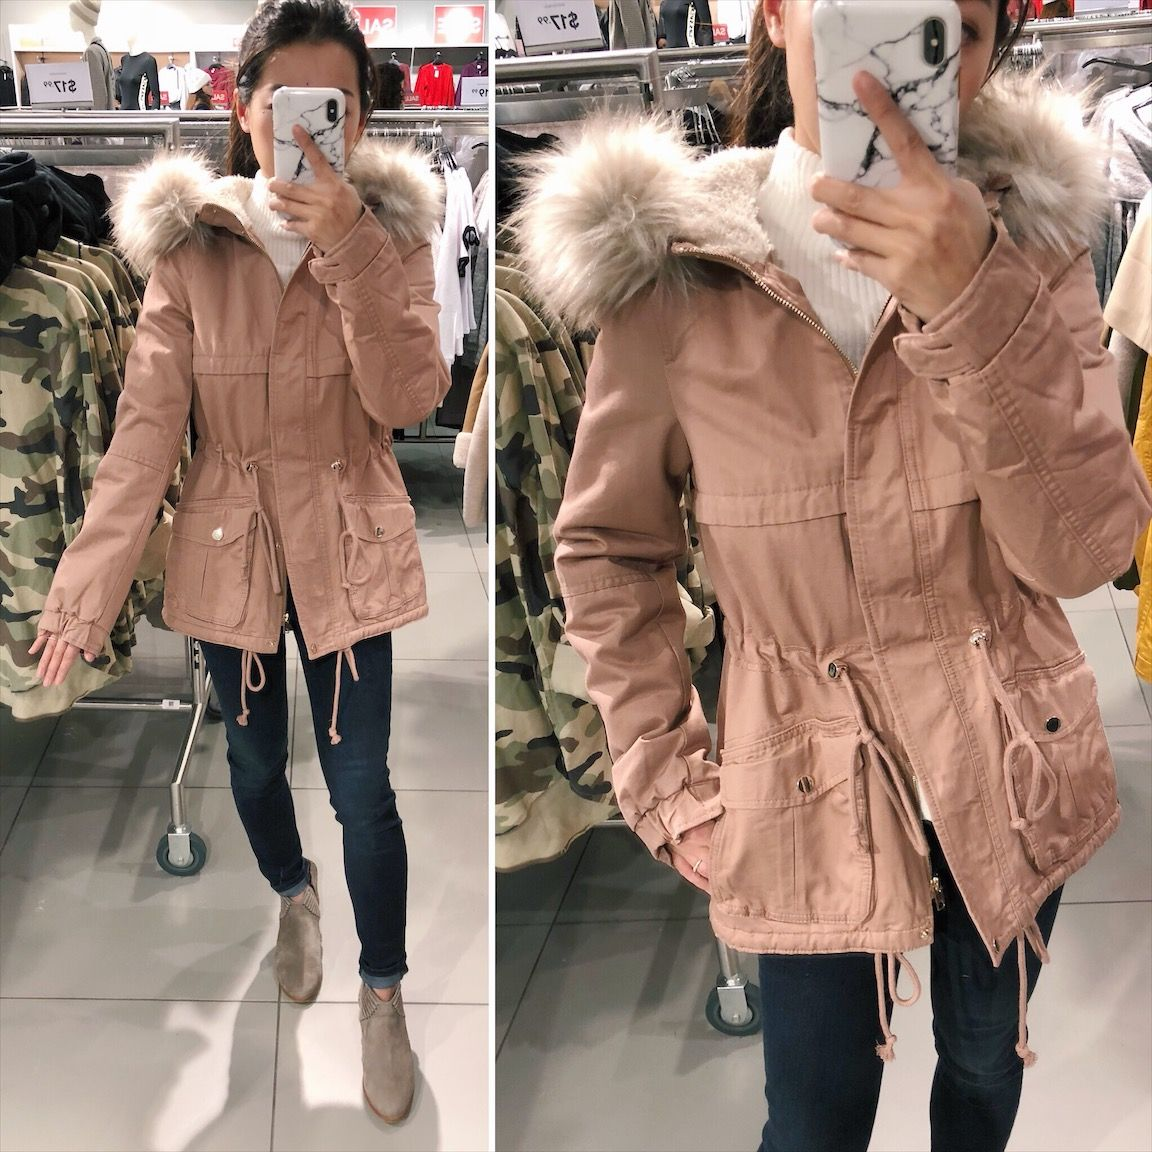 Affordable Parka Jackets For Petite Women Army Jacket Outfits Parka Jacket Outfit Parka Coat Outfit [ 1152 x 1152 Pixel ]